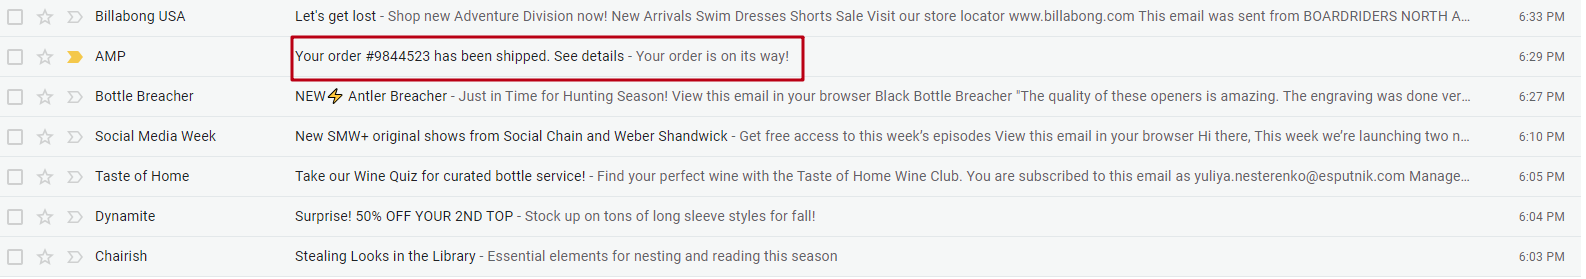 Shipping Confirmation Subject Line